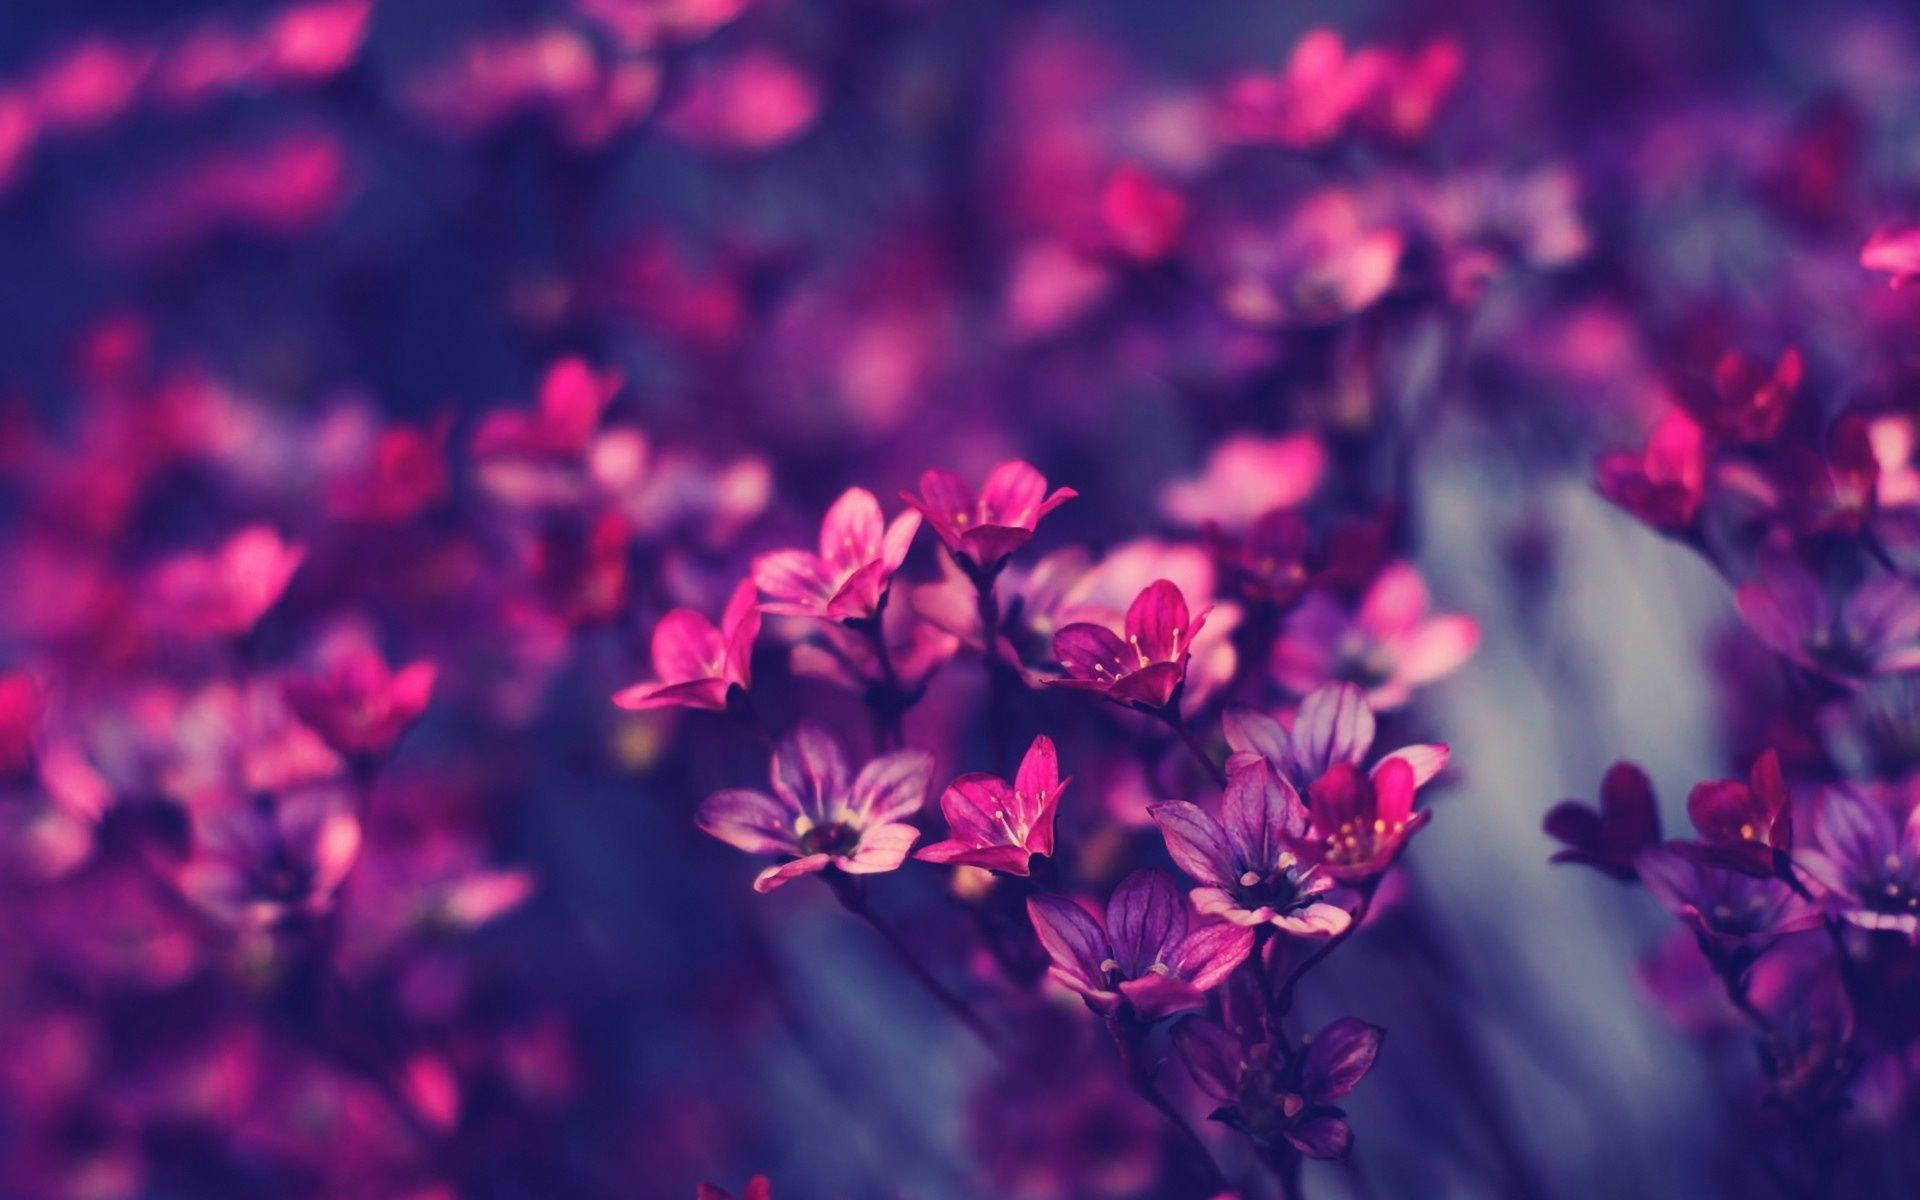 Little Purple Flowers Wallpapers 9225 Full HD Wallpaper Desktop